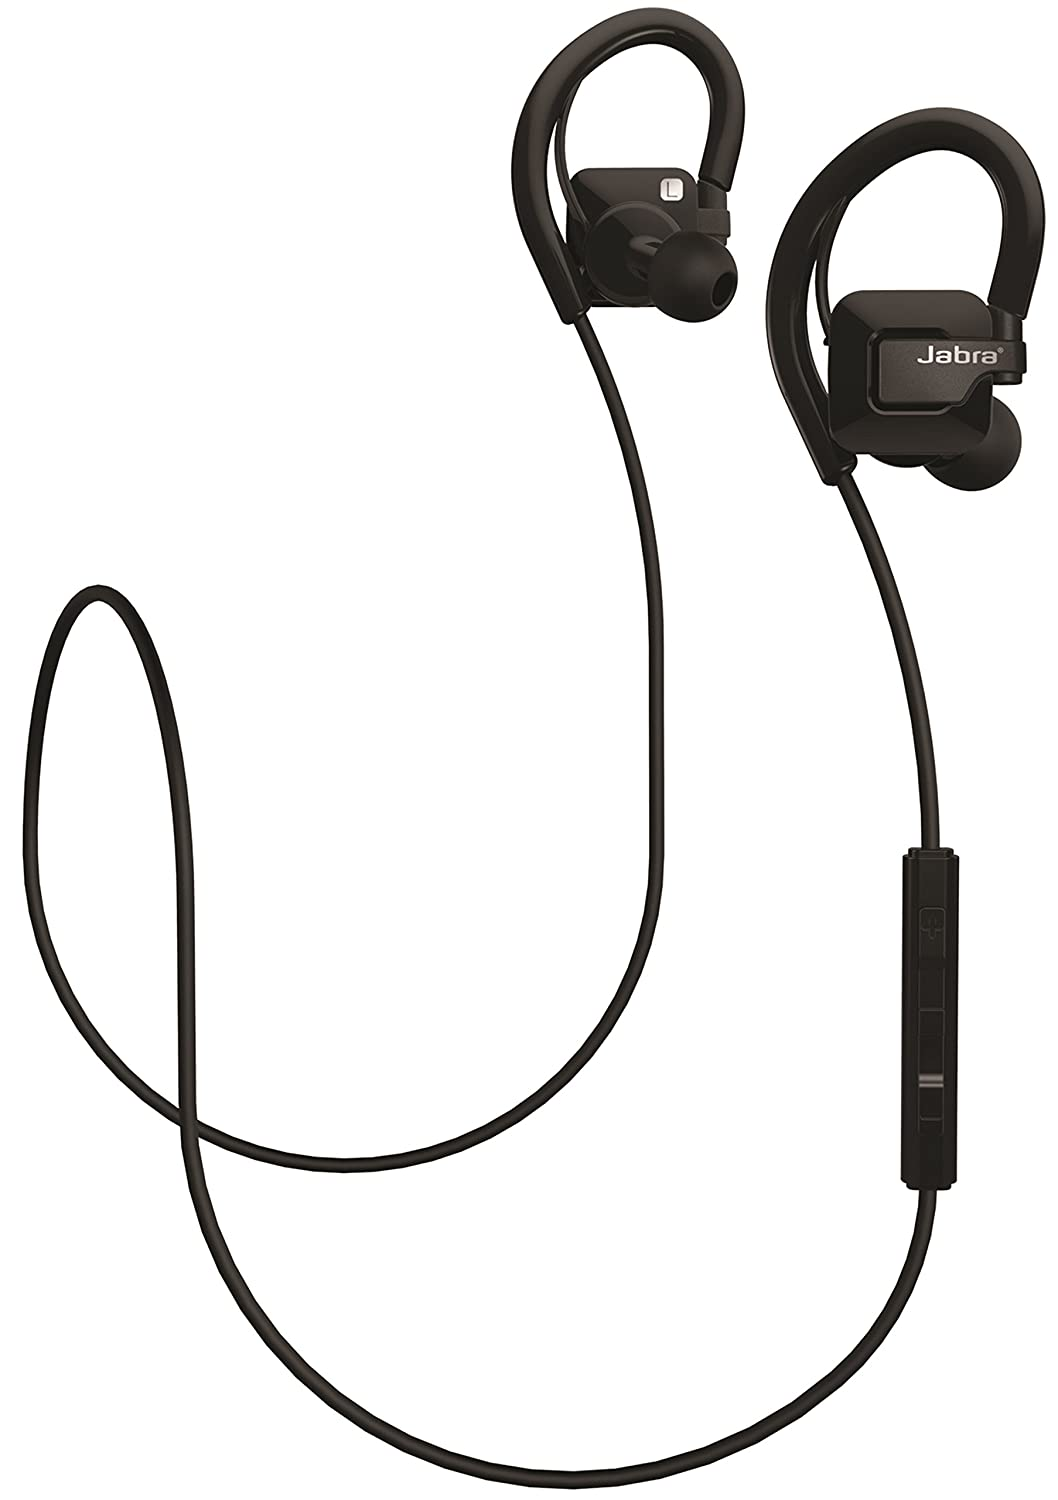 d051574f46b Jabra Step Wireless Stereo Headset with Music and Call: Amazon.co.uk:  Electronics